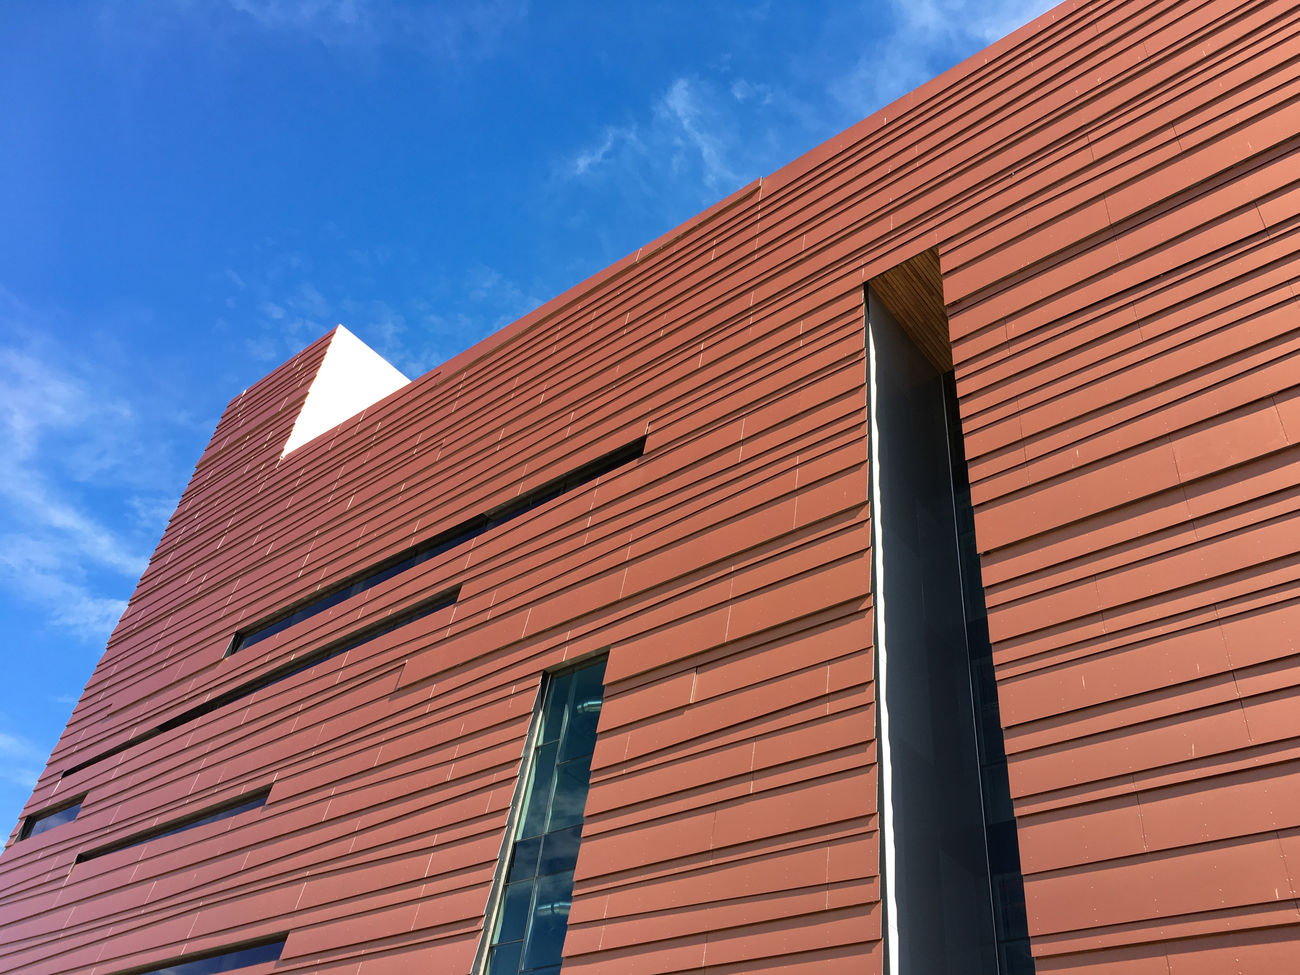 Flagstaff has few examples of modern architecture, but here's one from the Northern Arizona University campus. iPhone photo. Architecture Architecture Blue Sky Building Exterior Built Structure Day Low Angle View Modern No People Outdoors Sky Minimalist Architecture The City Light